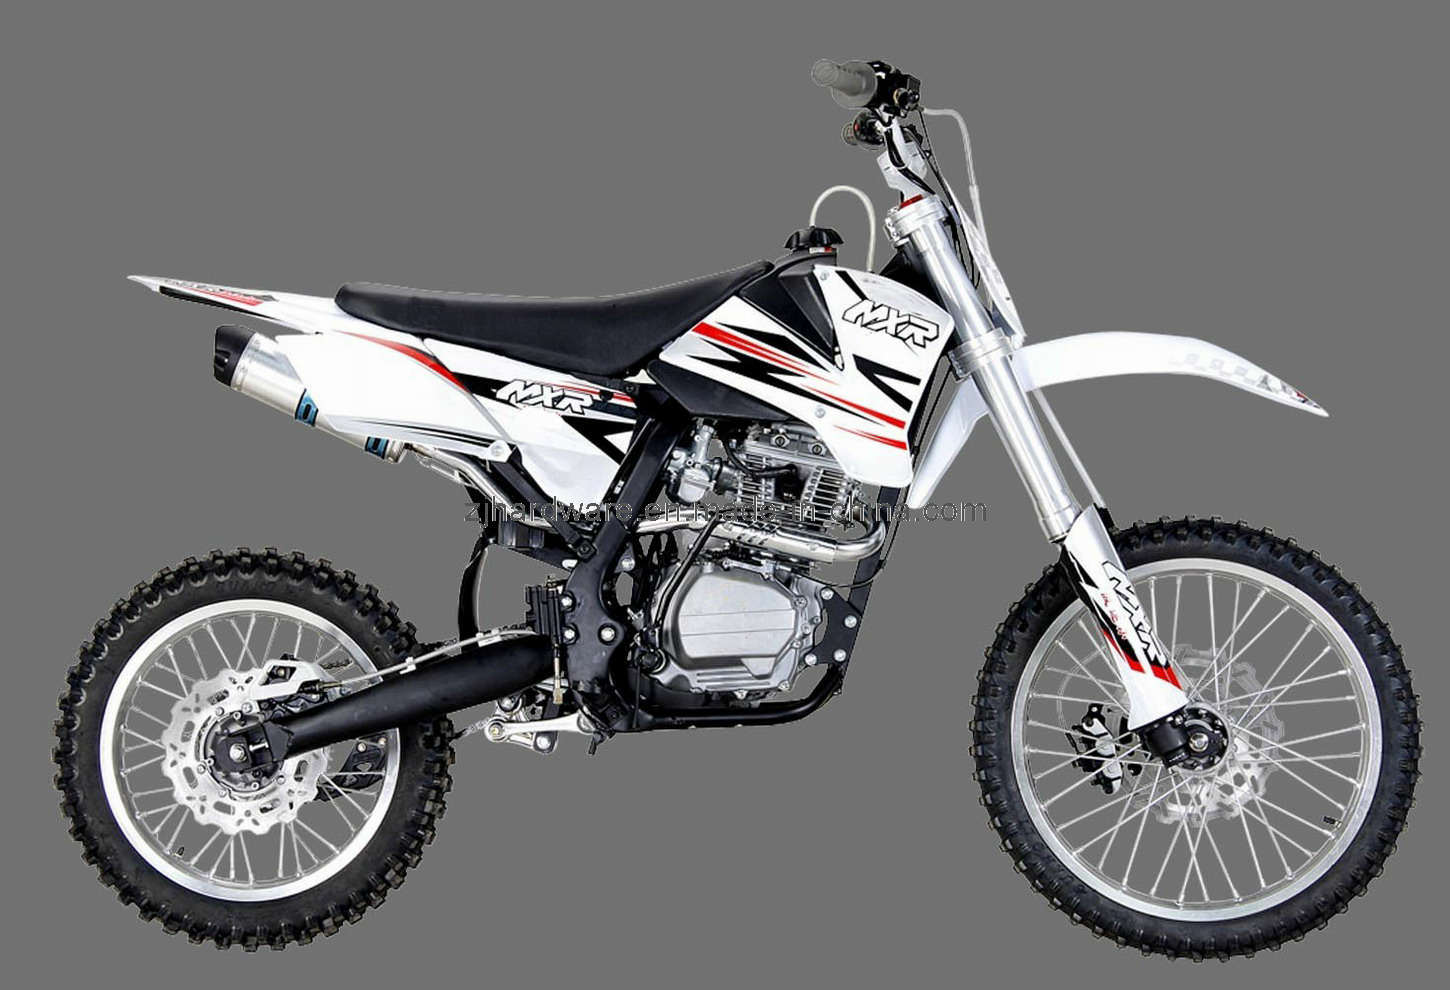 Dirt bike hdgs f04ag